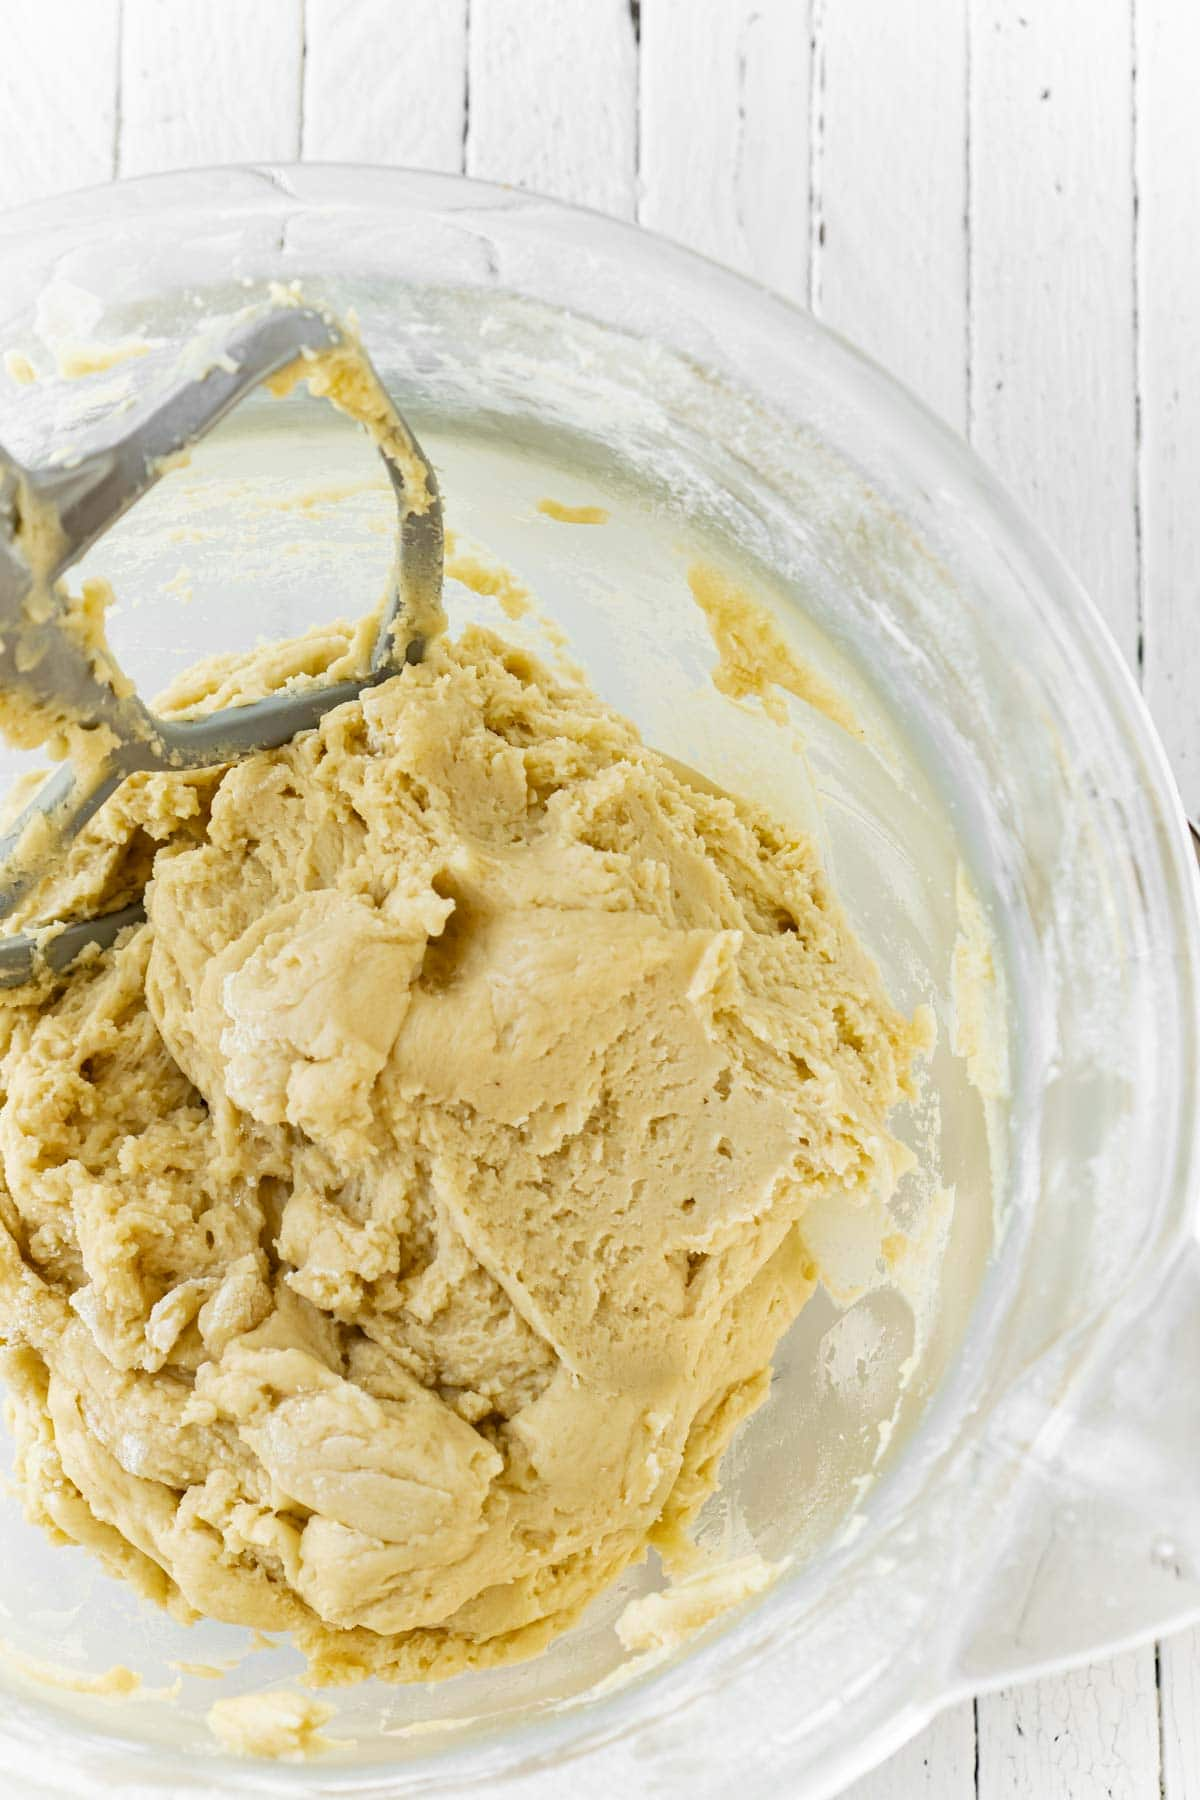 Cut out sugar cookie dough in a glass mixing bowl